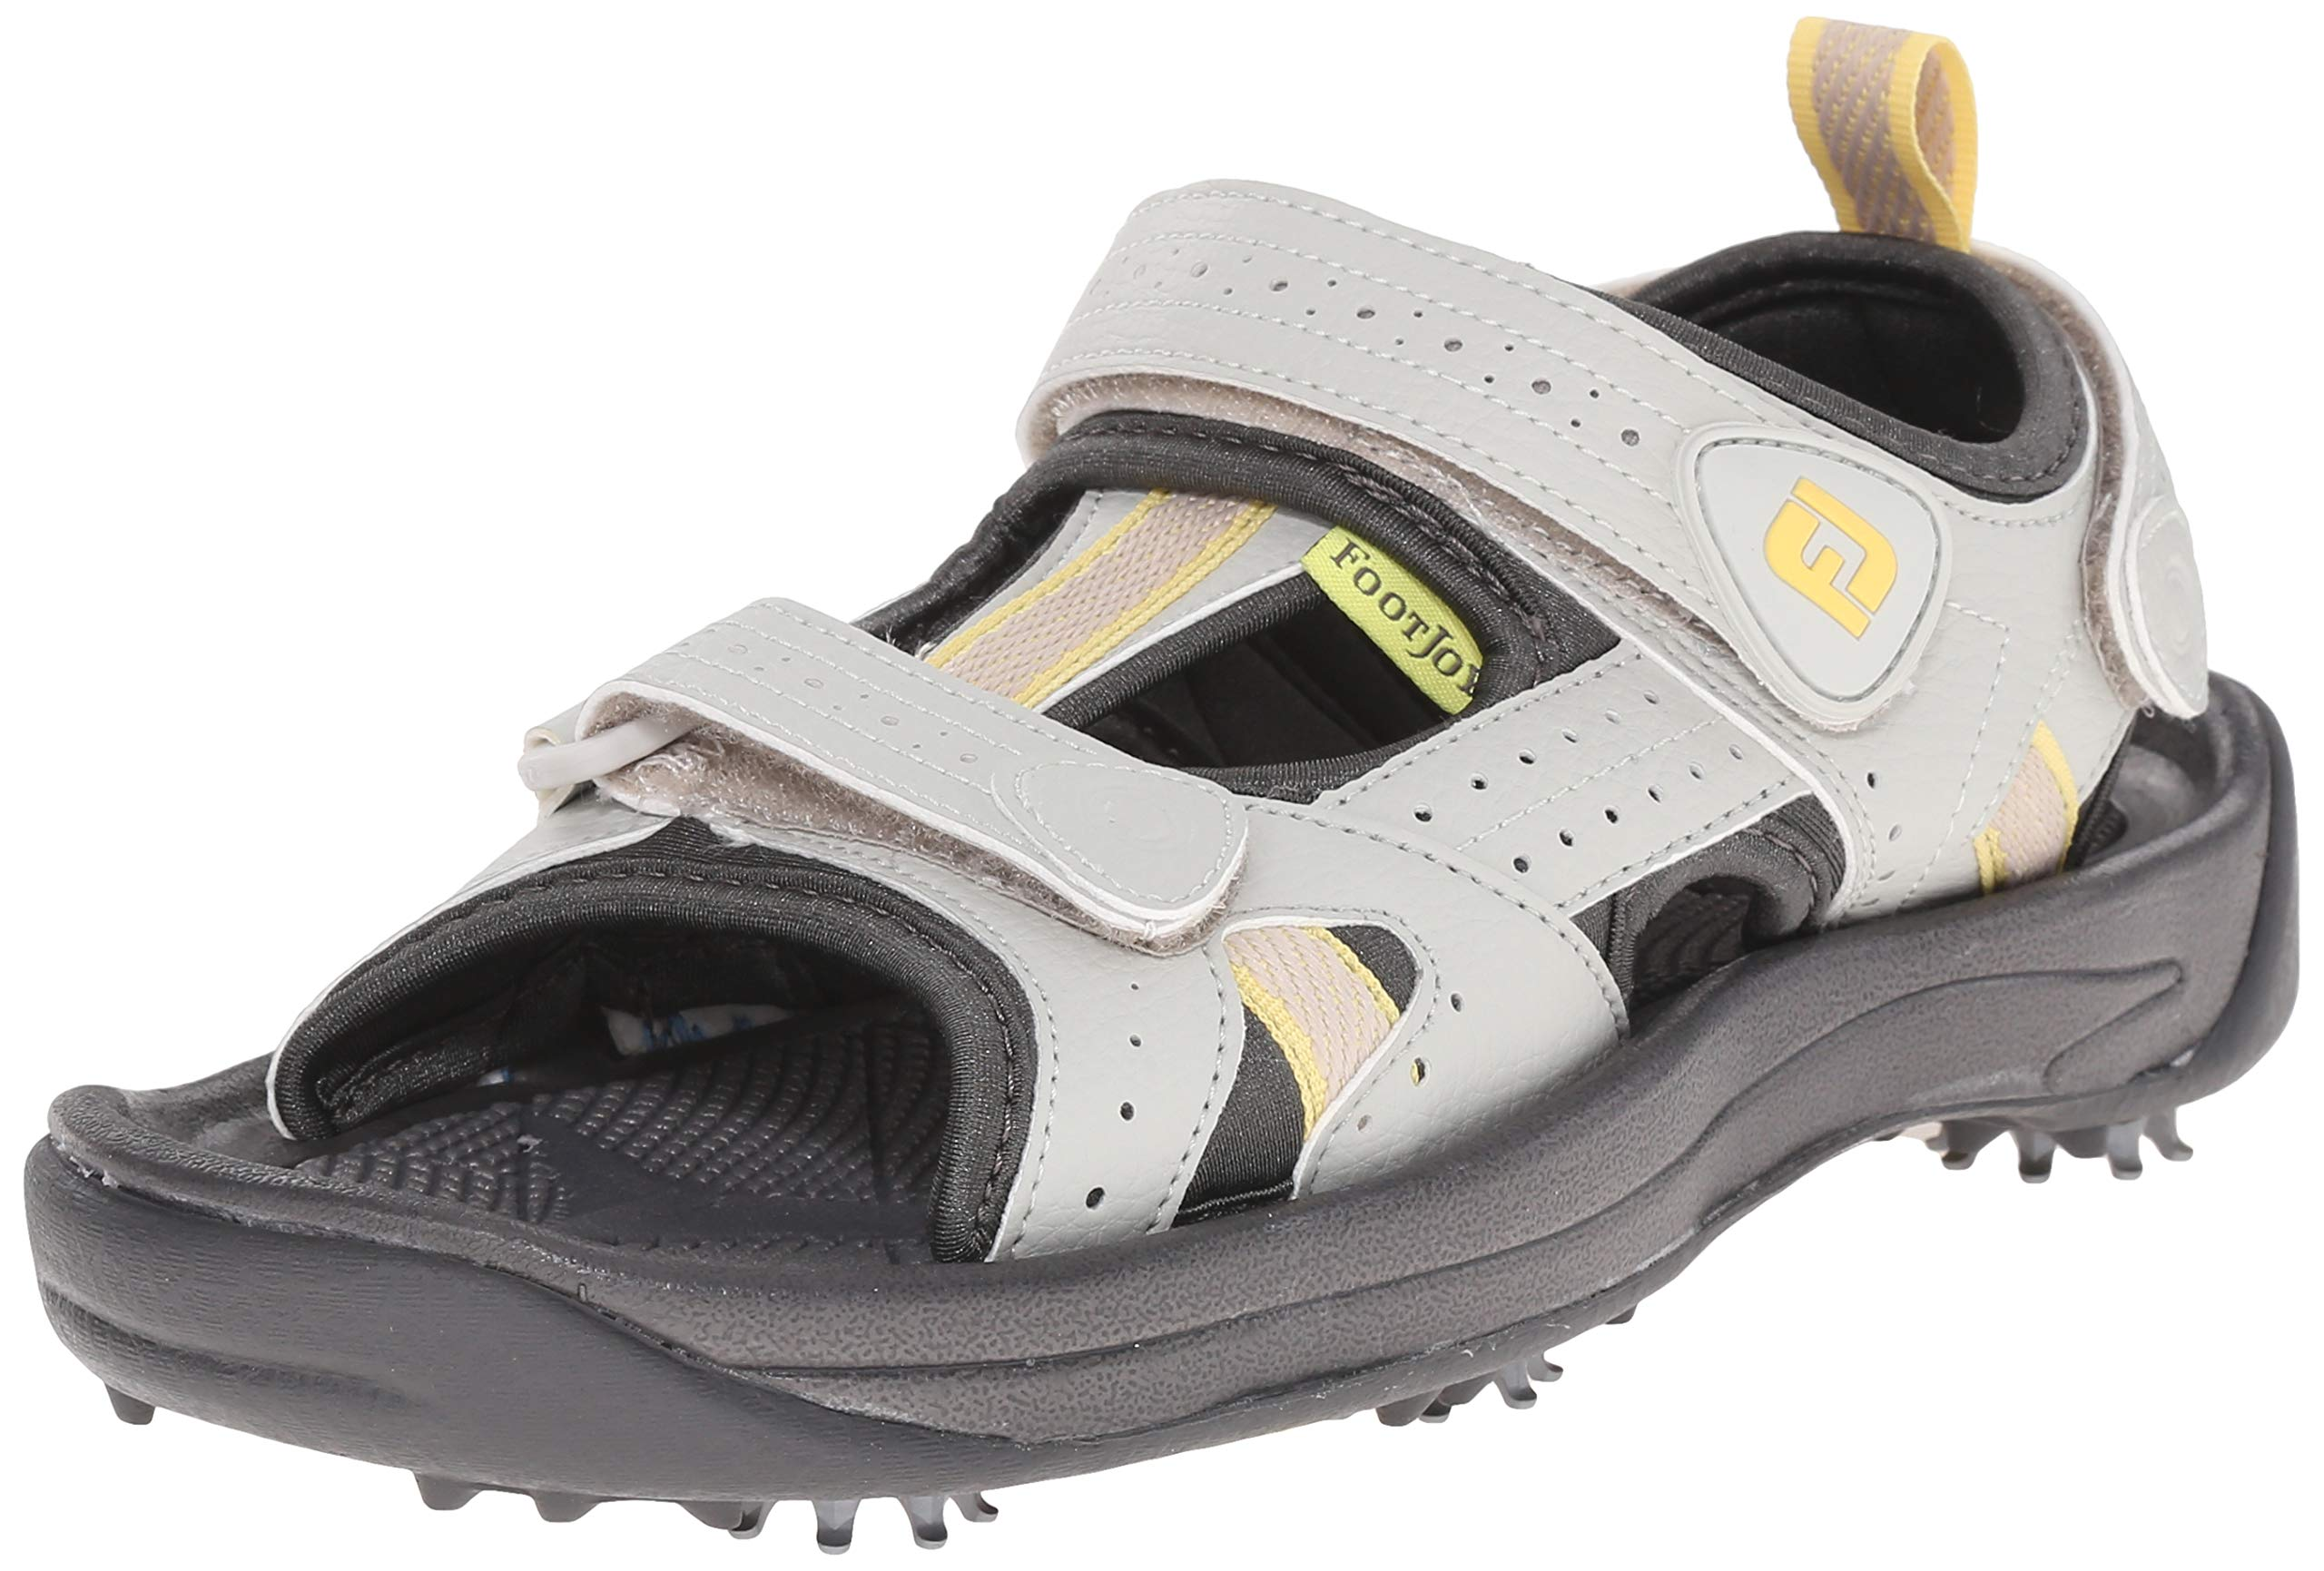 FootJoy Women's Sandals Golf Shoes, cloud, 11 M US by FootJoy